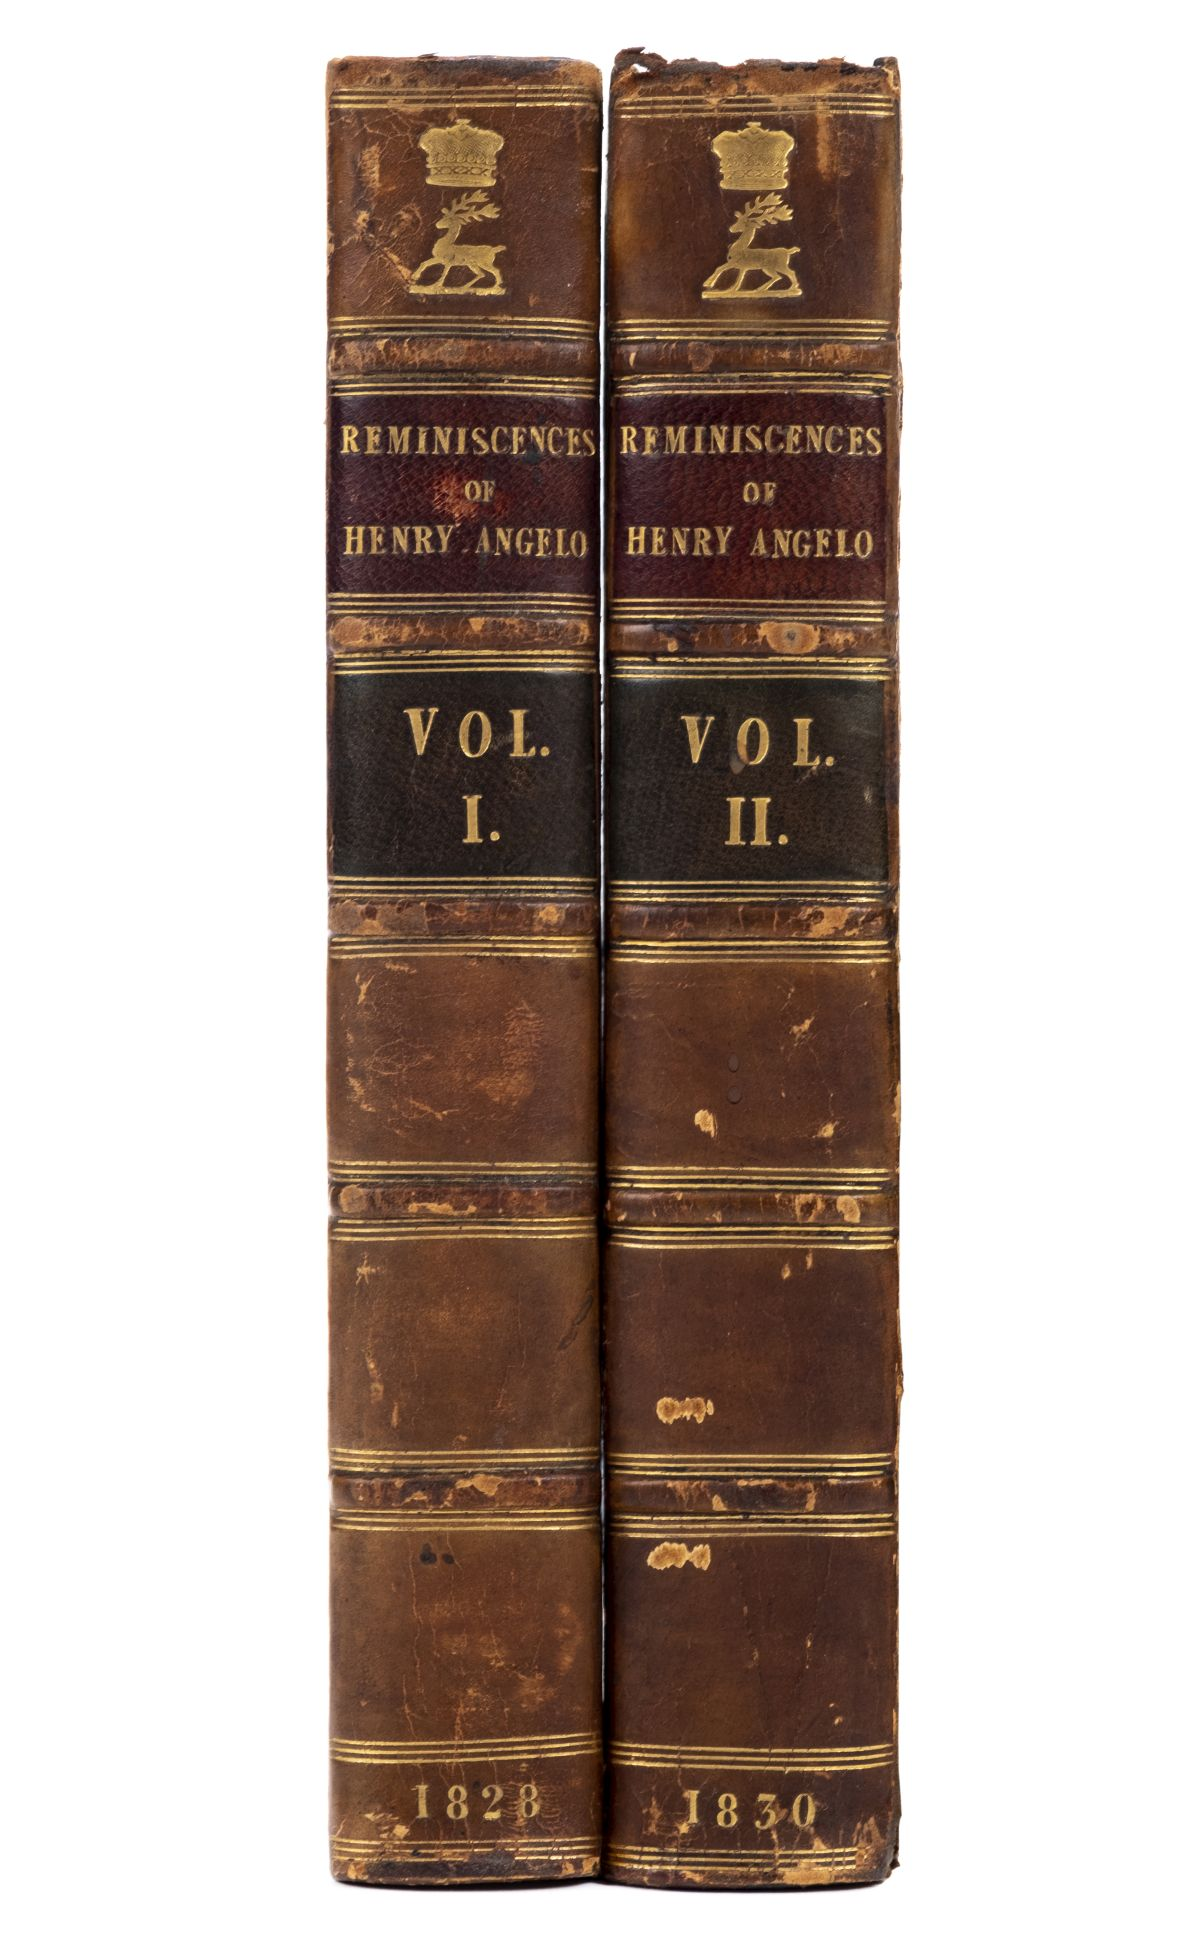 Angelo (Henry). Reminiscences of Henry Angelo, 2 volumes, 1828